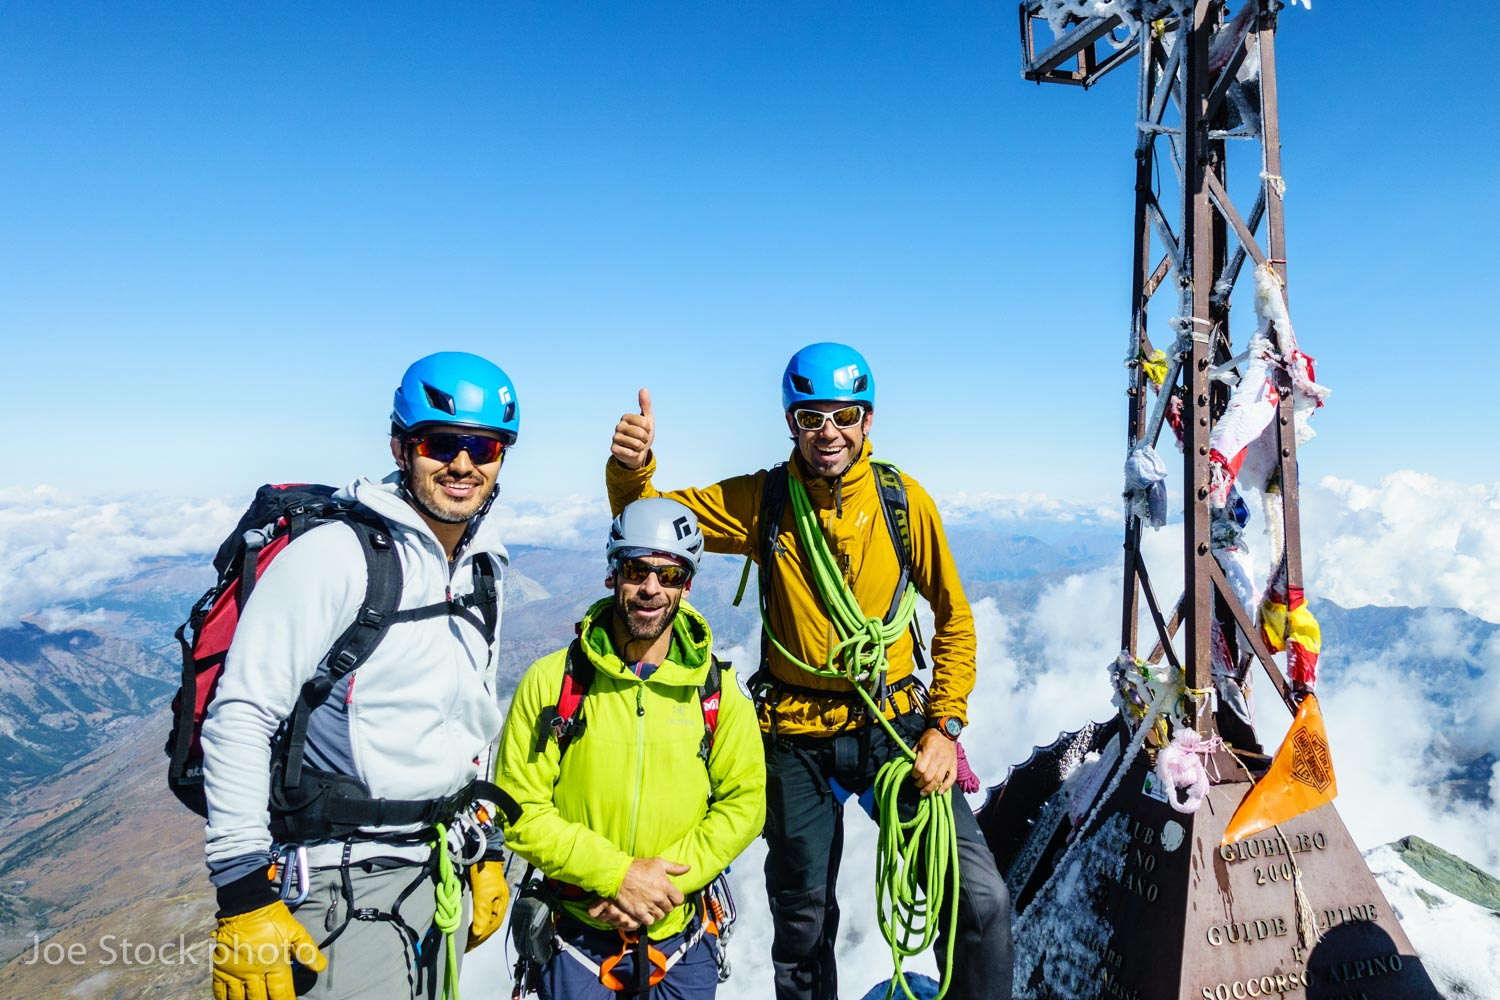 Sam Sidiqi, Andrew Wexler and Joe on the summit of Mont Viso. Sam is an Afghani real estate developer living in Kuwait. Sam and I skied together in near Anchorage in 2015. Sam had two guides because Sam's buddy Mike planned to join us on the Matterhorn. The Matterhorn has a required 1:1 ratio.